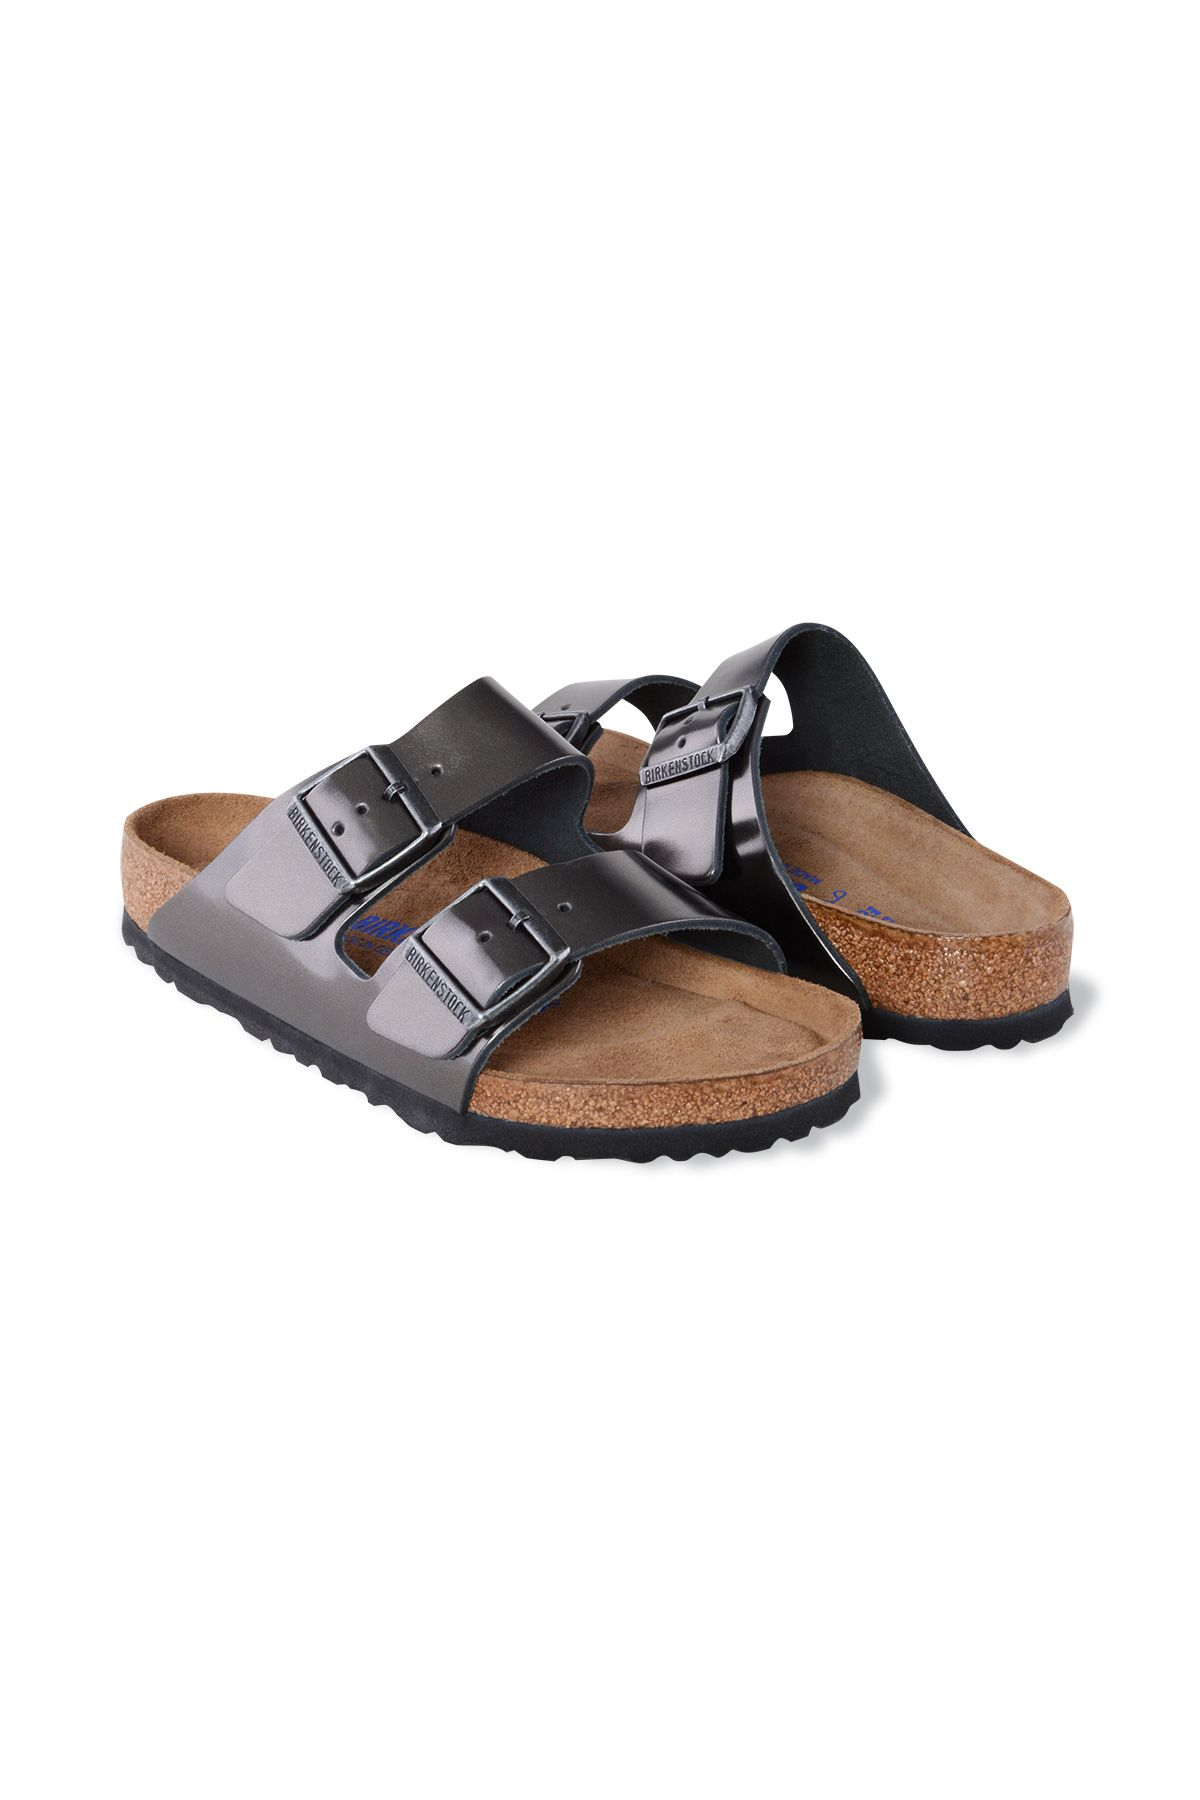 Birkenstock Gizeh BS Genuine Leather Women's Summer Slippers 1000292 Silver